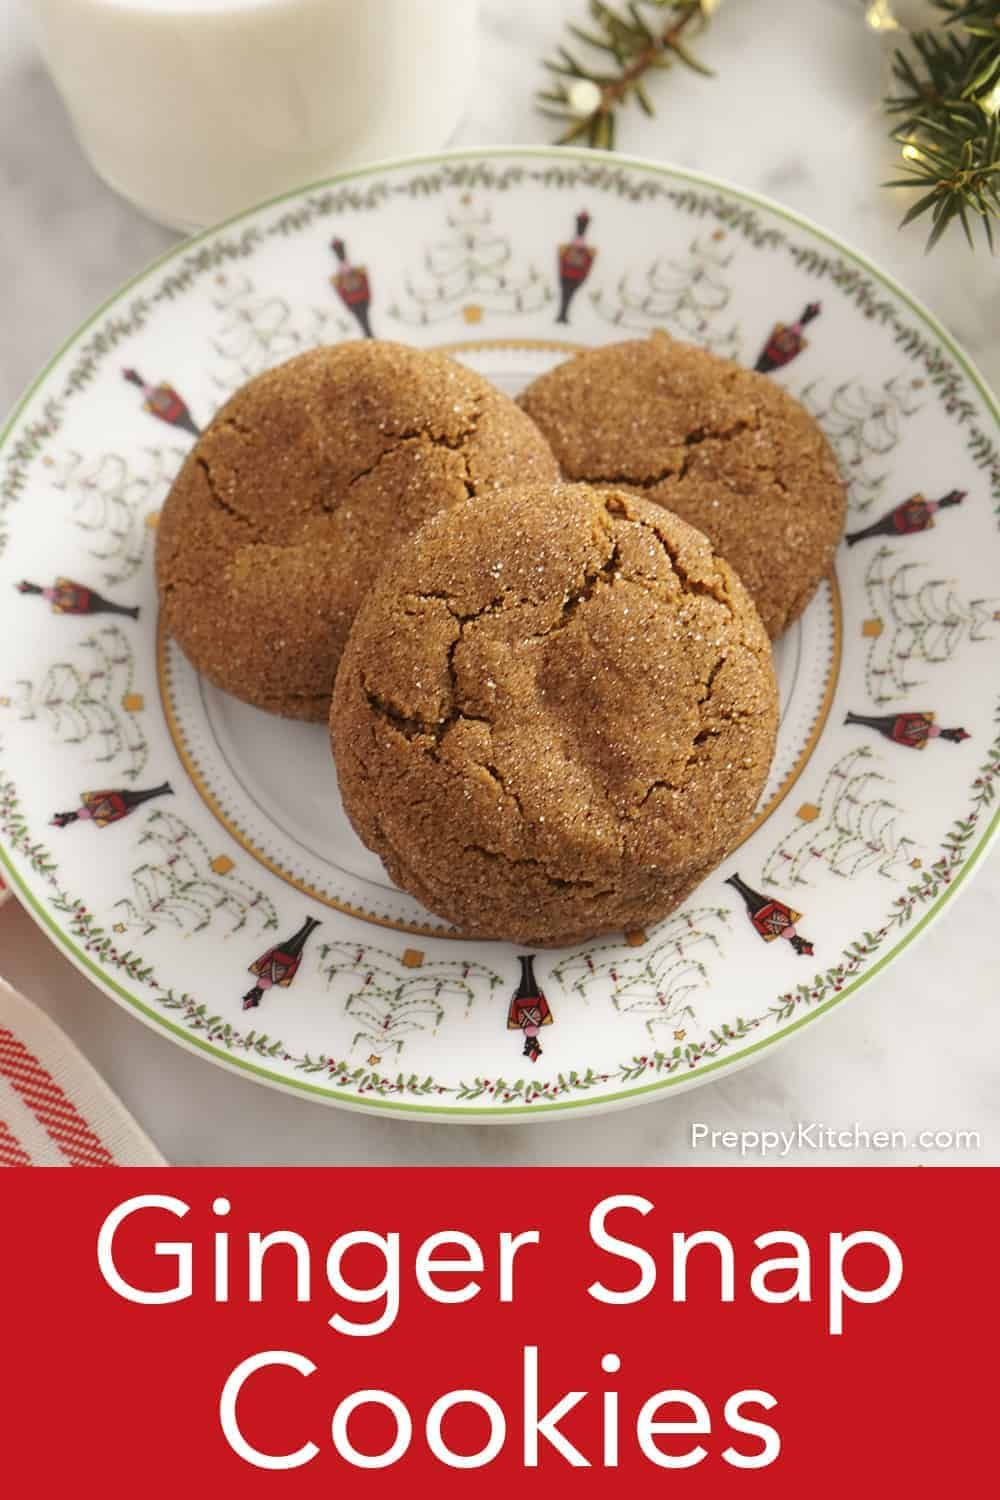 You'll love these perfectly crisp and delicious ginger snap cookies cookies, they basically